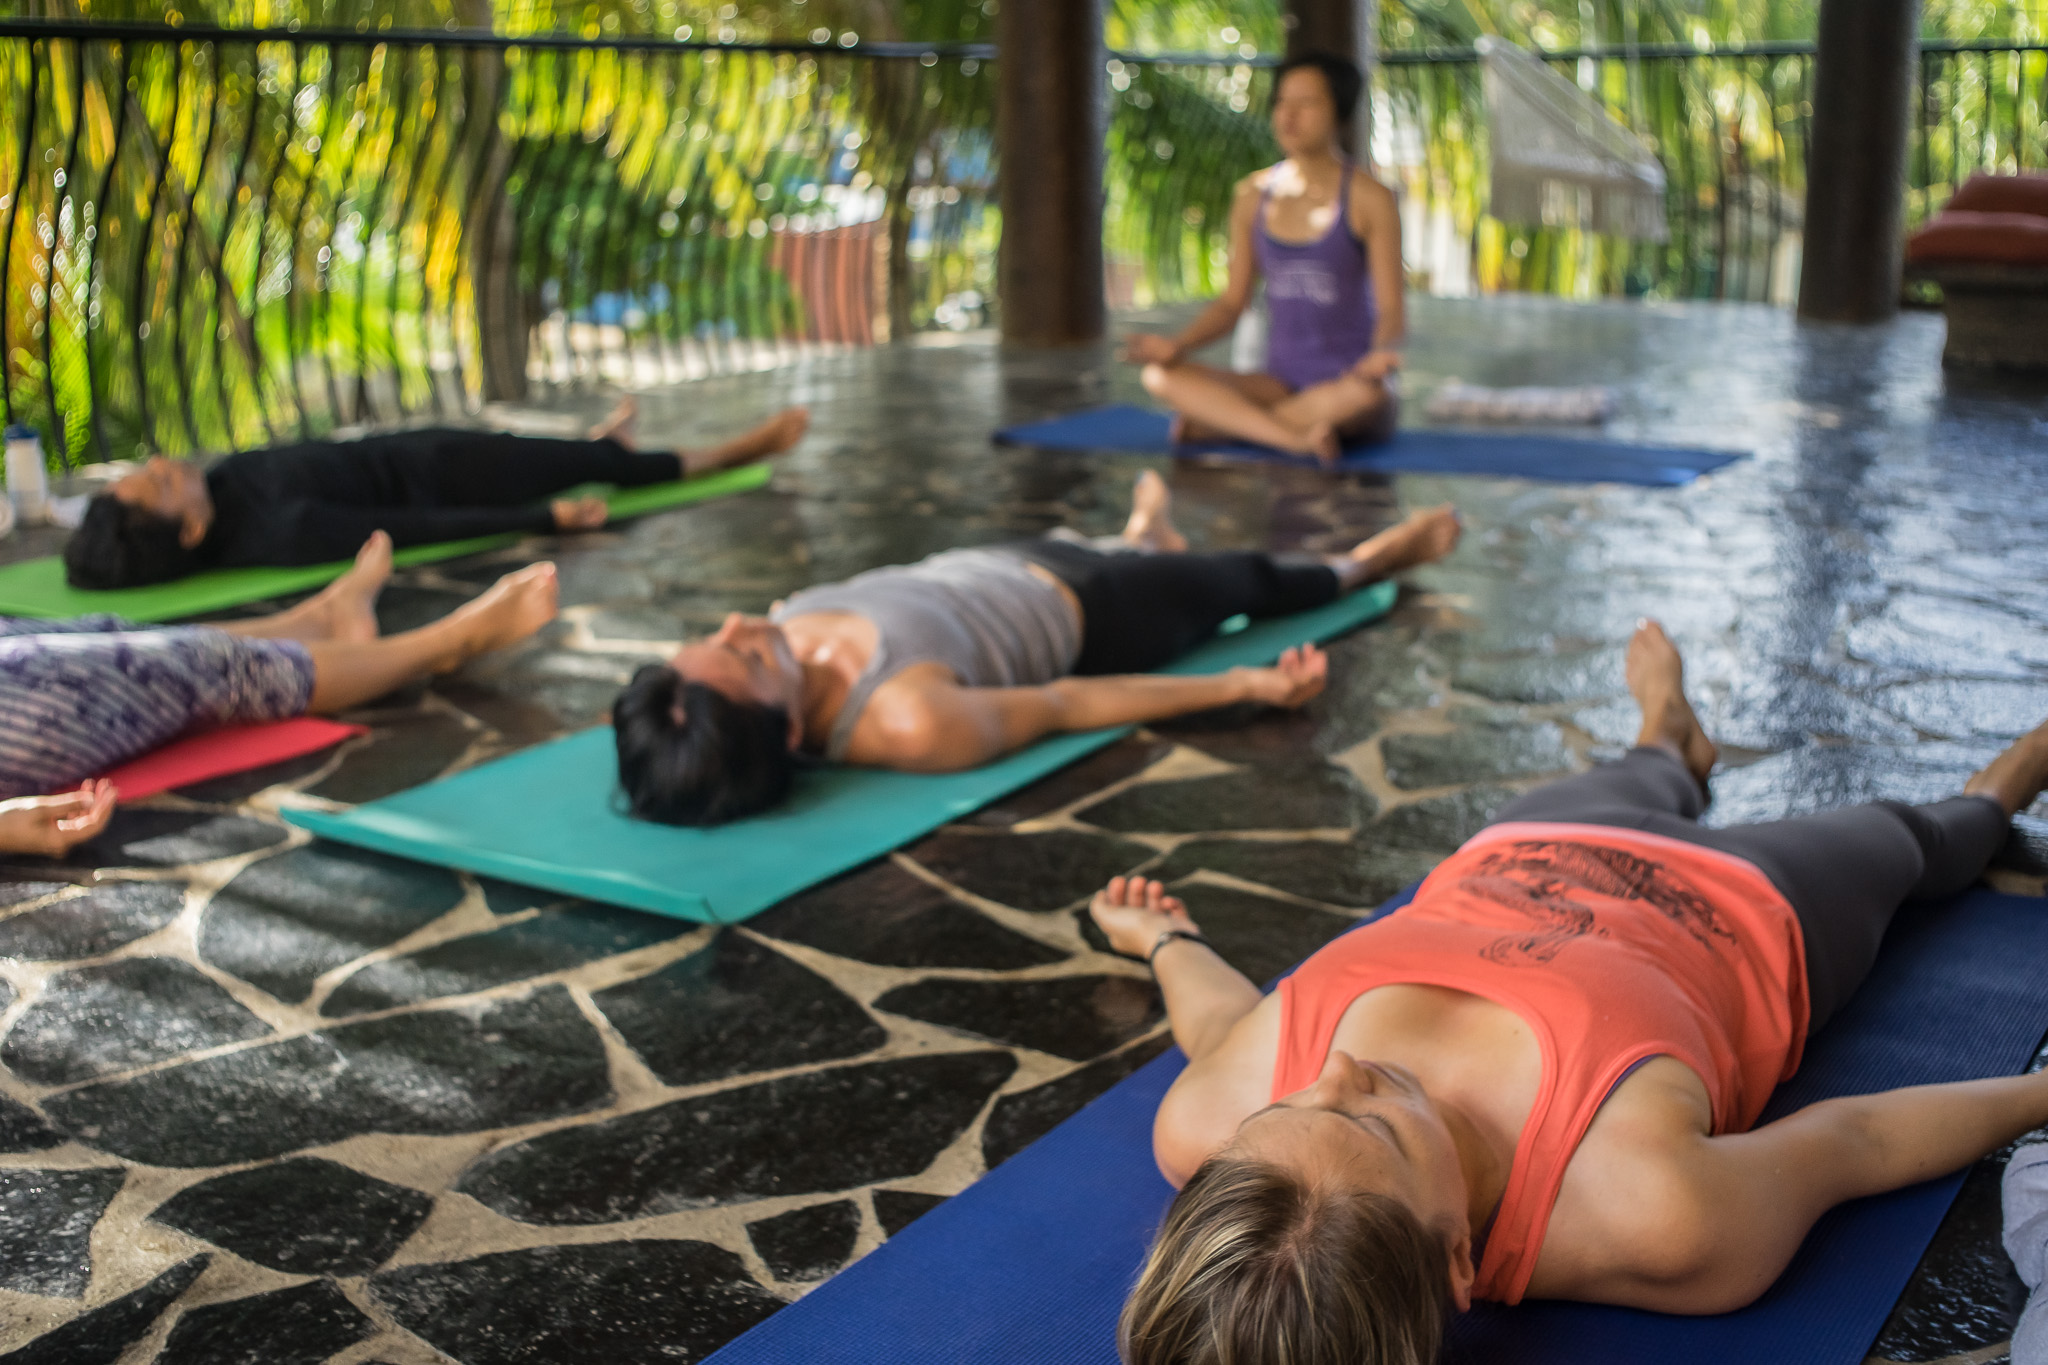 Yoga on the terrace at our accommodations. Photo credit: Jim Hill